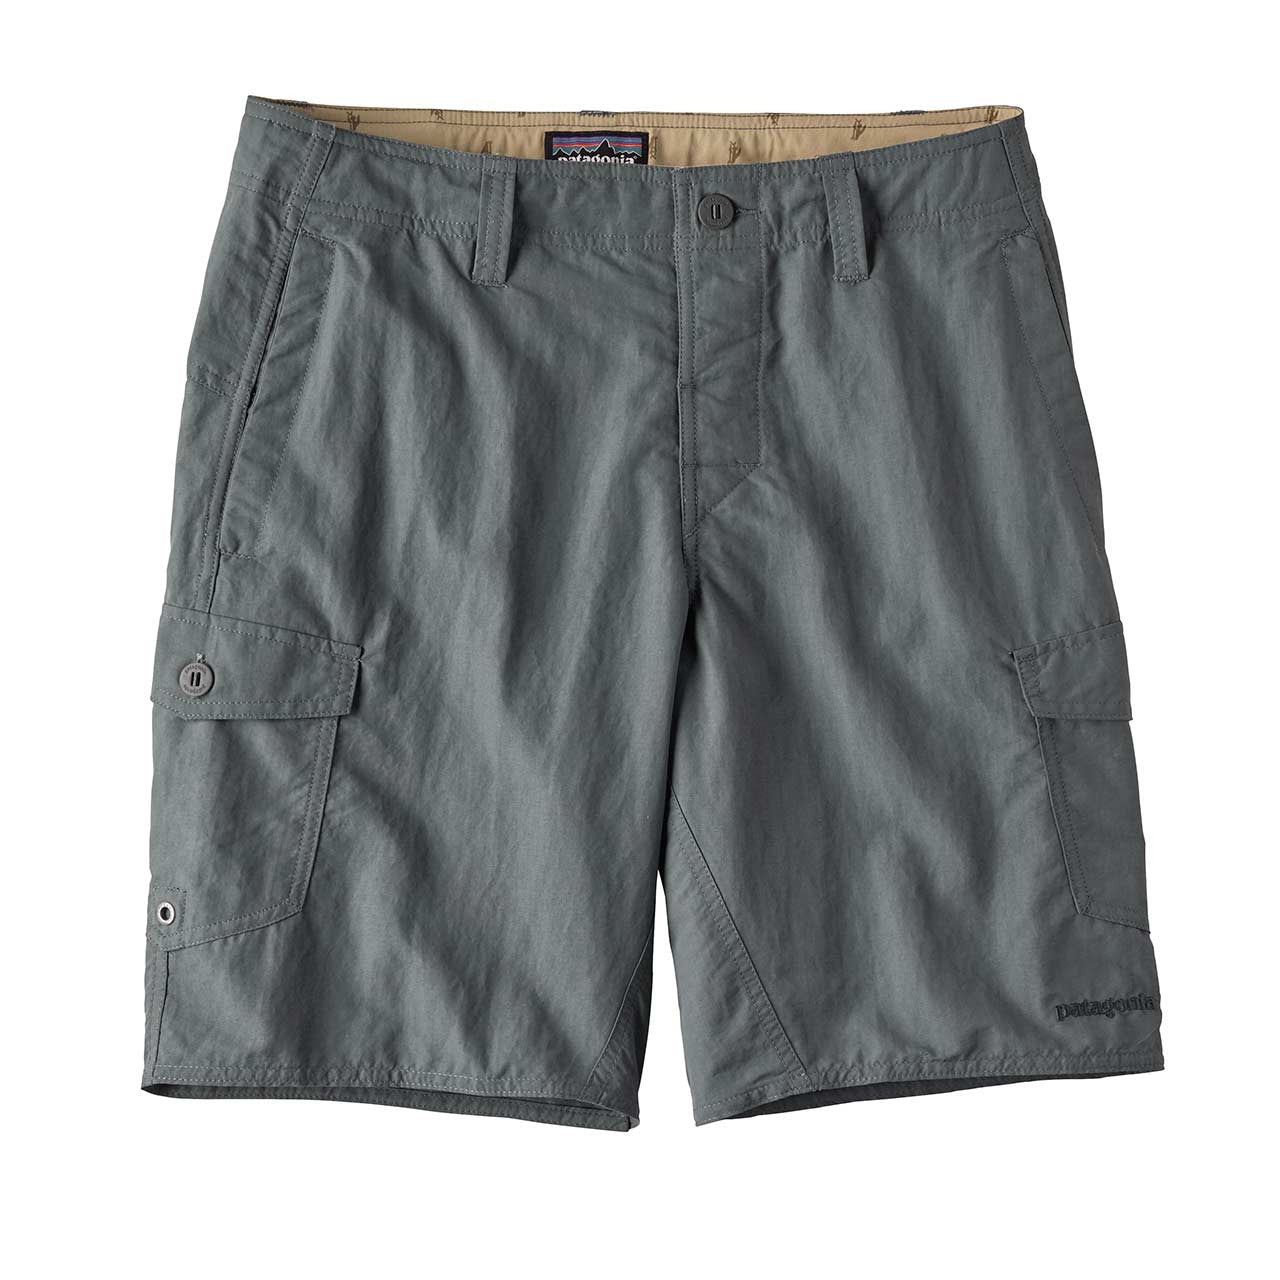 Patagonia_M's Wavefarer Cargo Shorts - 2 in._Nouveau Green_30